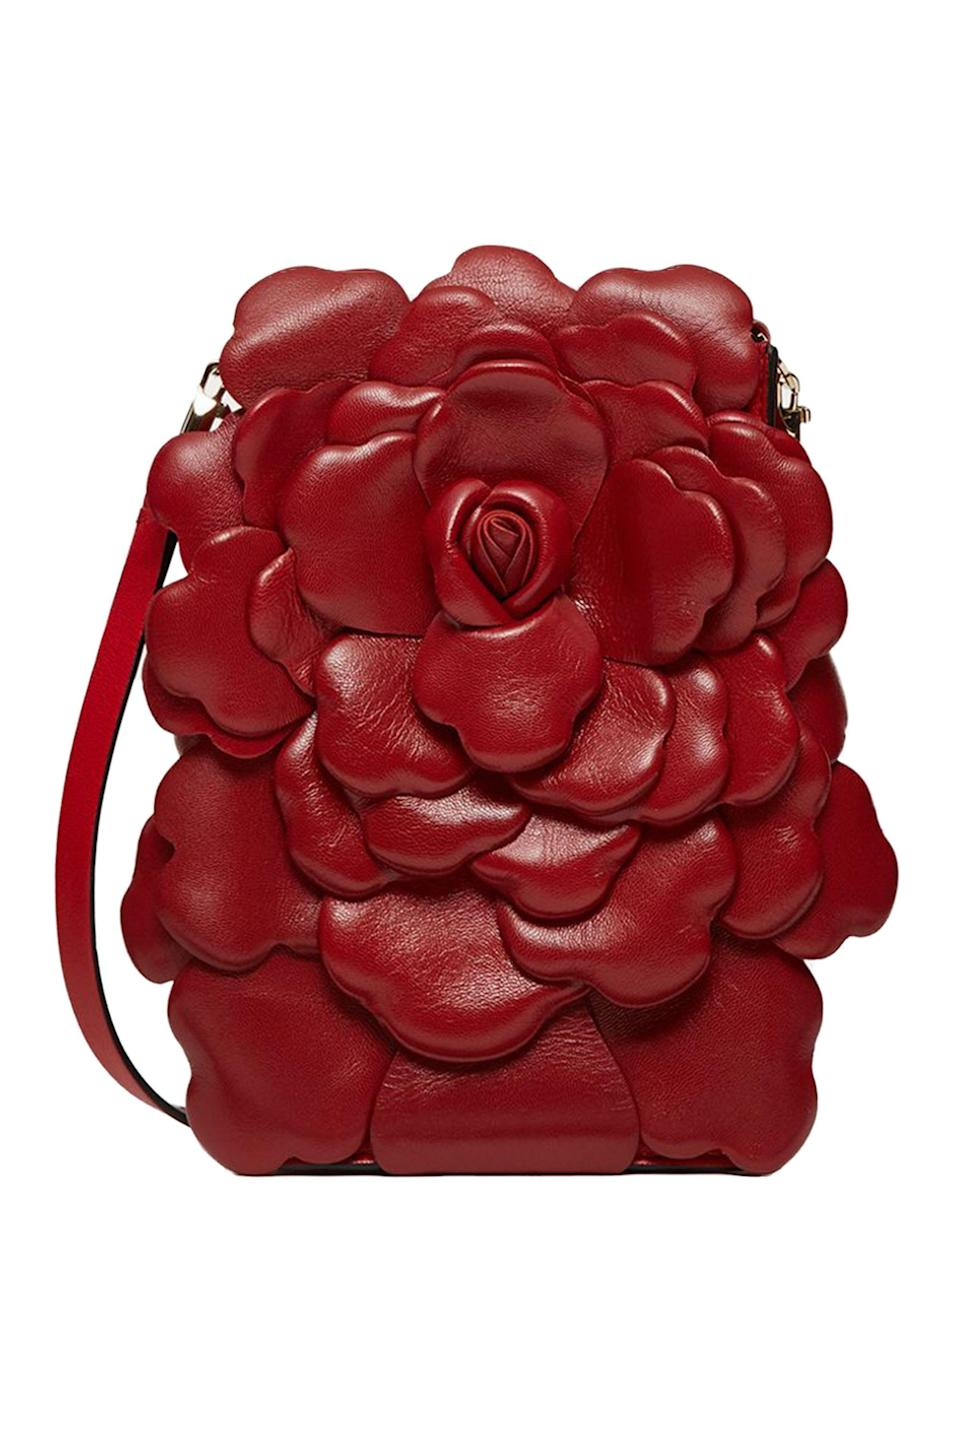 """<p><strong>THE SELECTION FOR HIM</strong></p><p>valentino.com</p><p><strong>$1750.00</strong></p><p><a href=""""https://www.valentino.com/en-us/cross-body-bags_cod22527730565966584.html#dept=US_Bags_W"""" rel=""""nofollow noopener"""" target=""""_blank"""" data-ylk=""""slk:Shop Now"""" class=""""link rapid-noclick-resp"""">Shop Now</a></p>"""